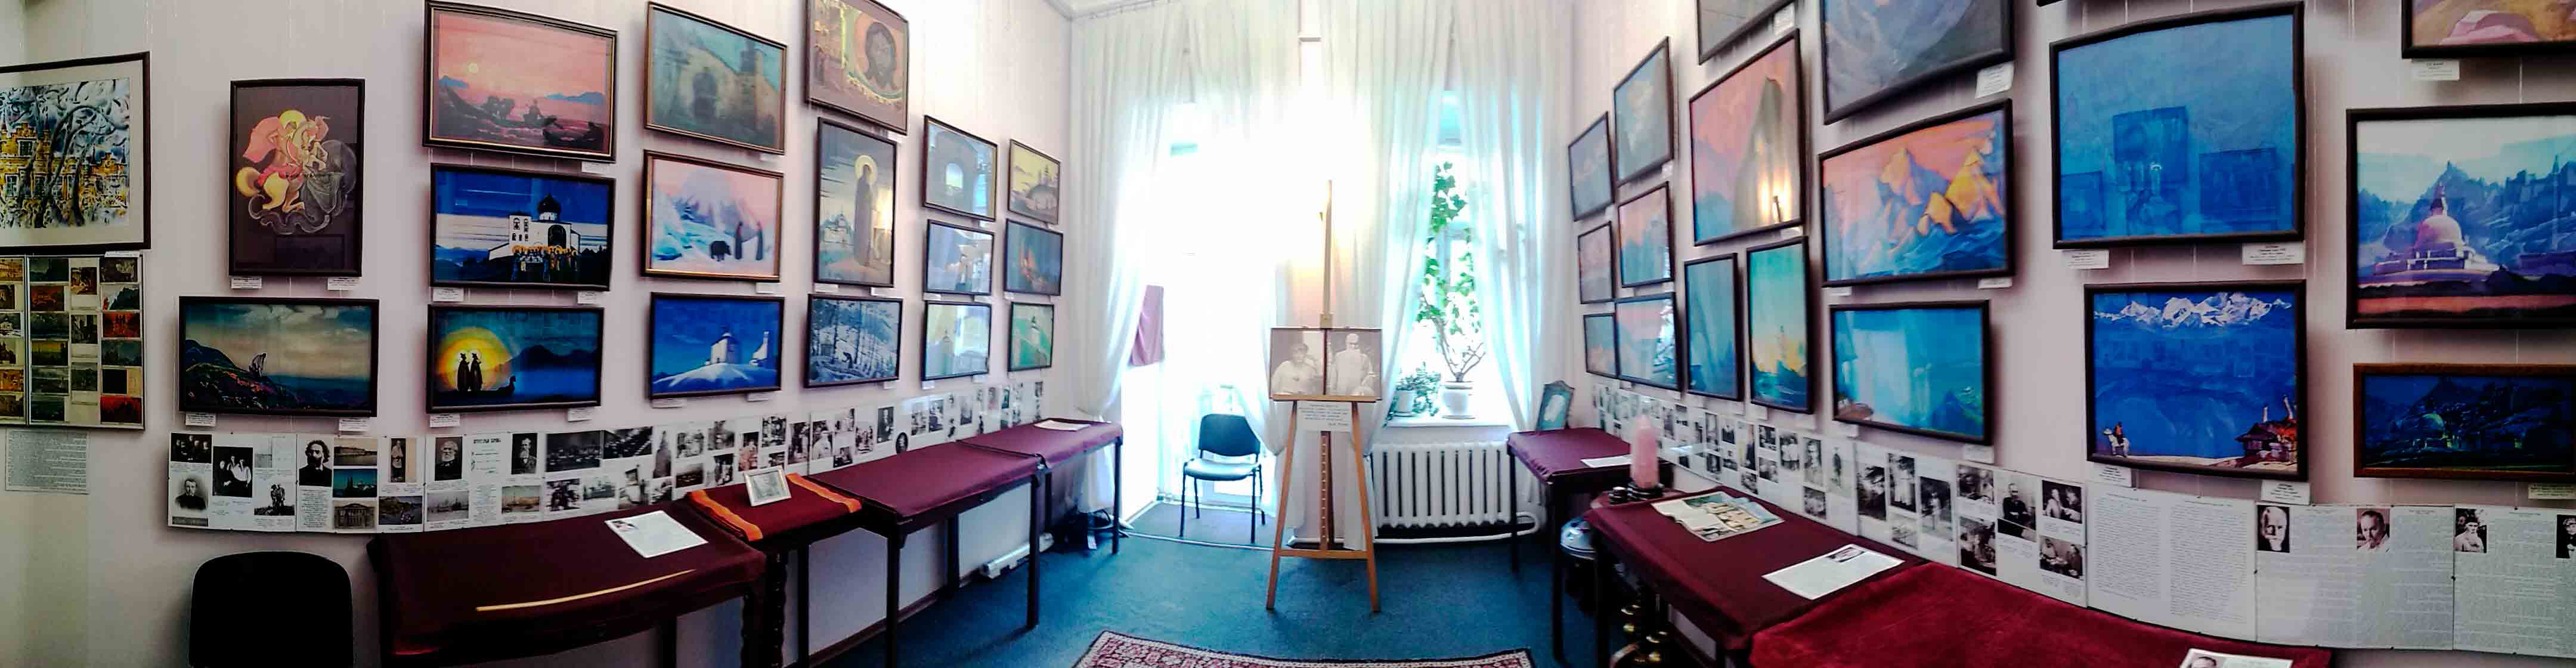 Exposition Roerich Family Hall